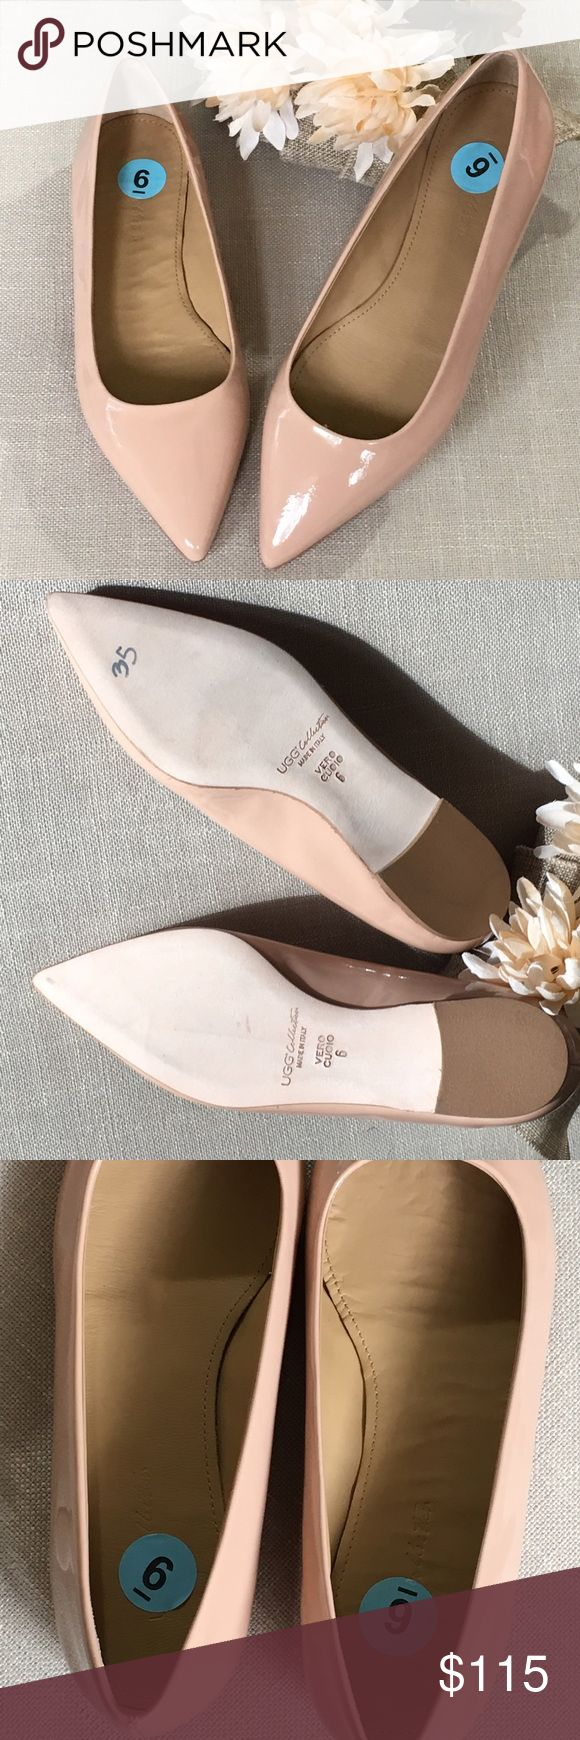 UGG Collection Vero Cuoio Tan Patent Flats